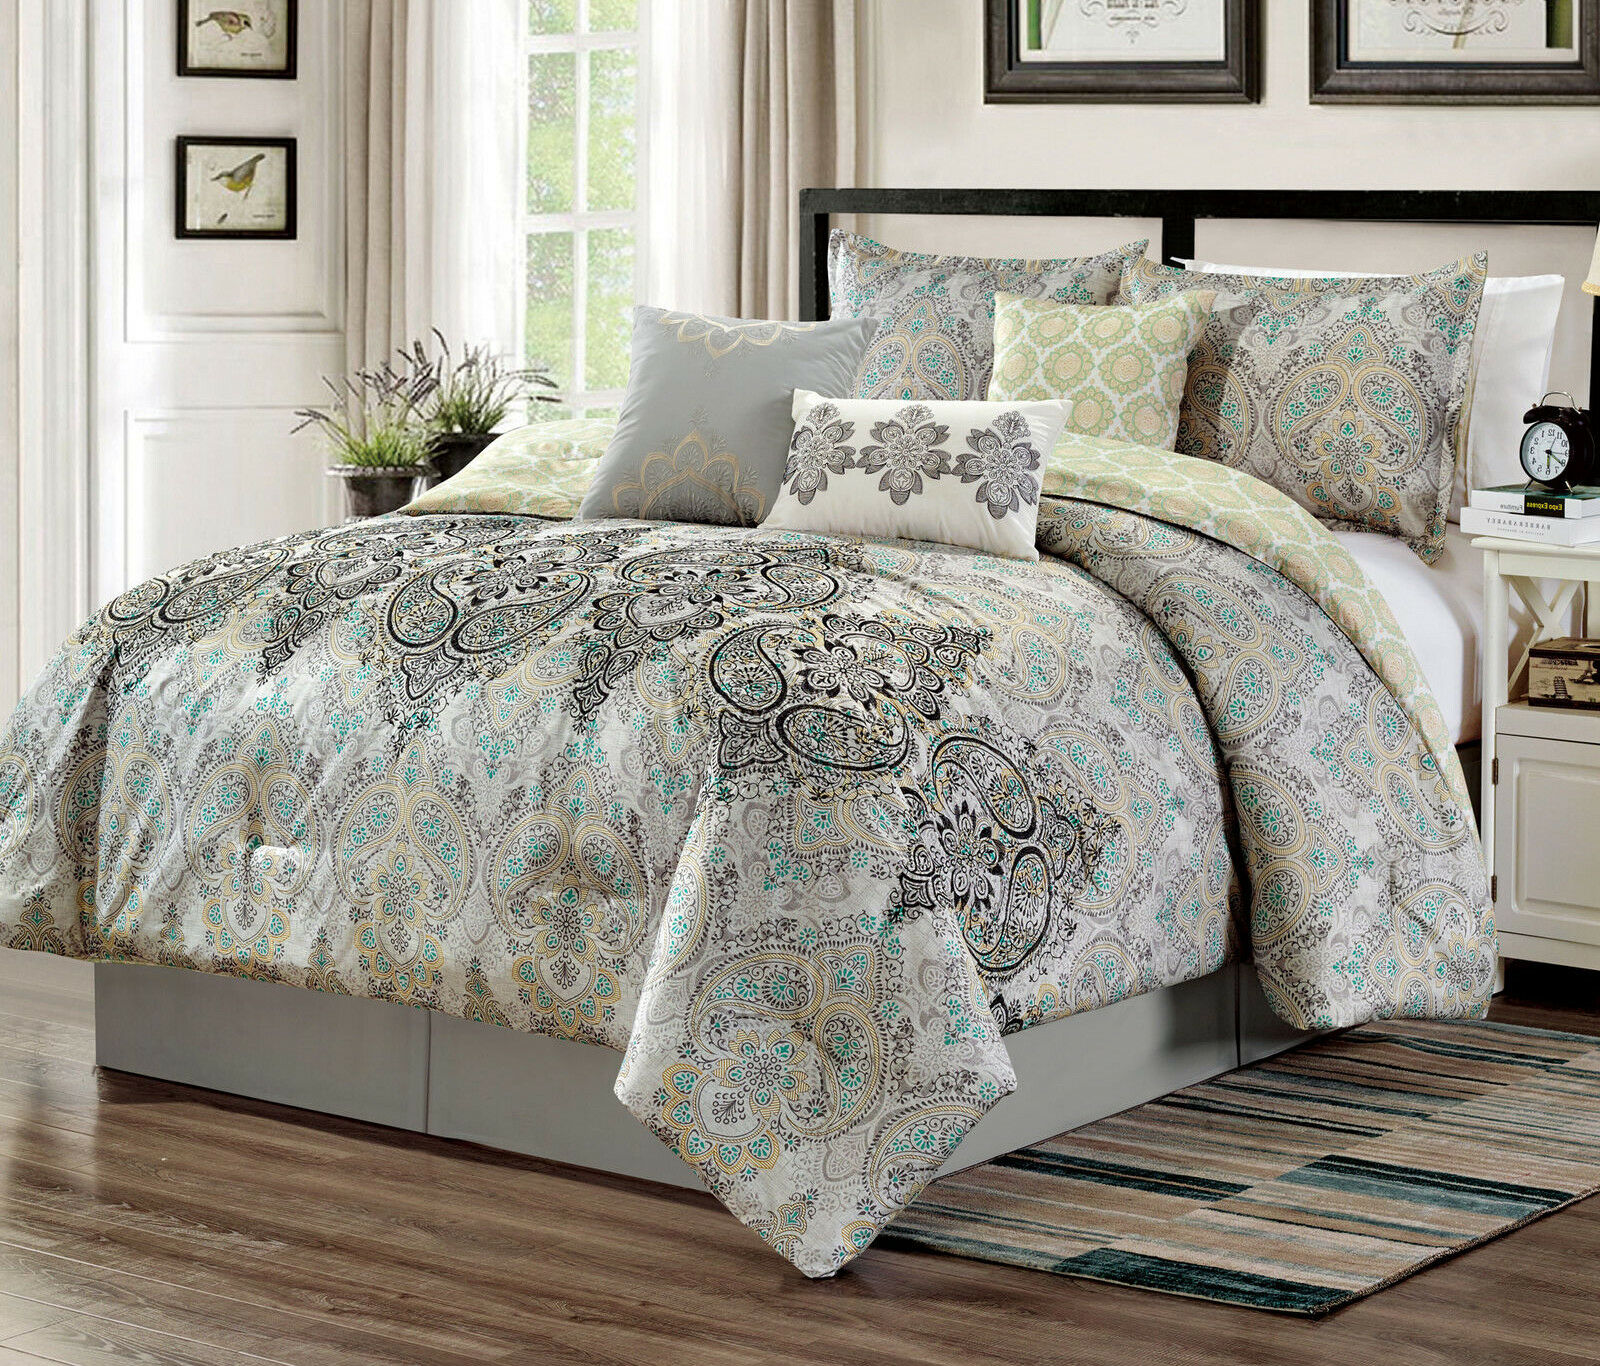 NEW Elegant Farbeful Paisley Scroll 7 pcs Cal King Queen Comforter Shams Set